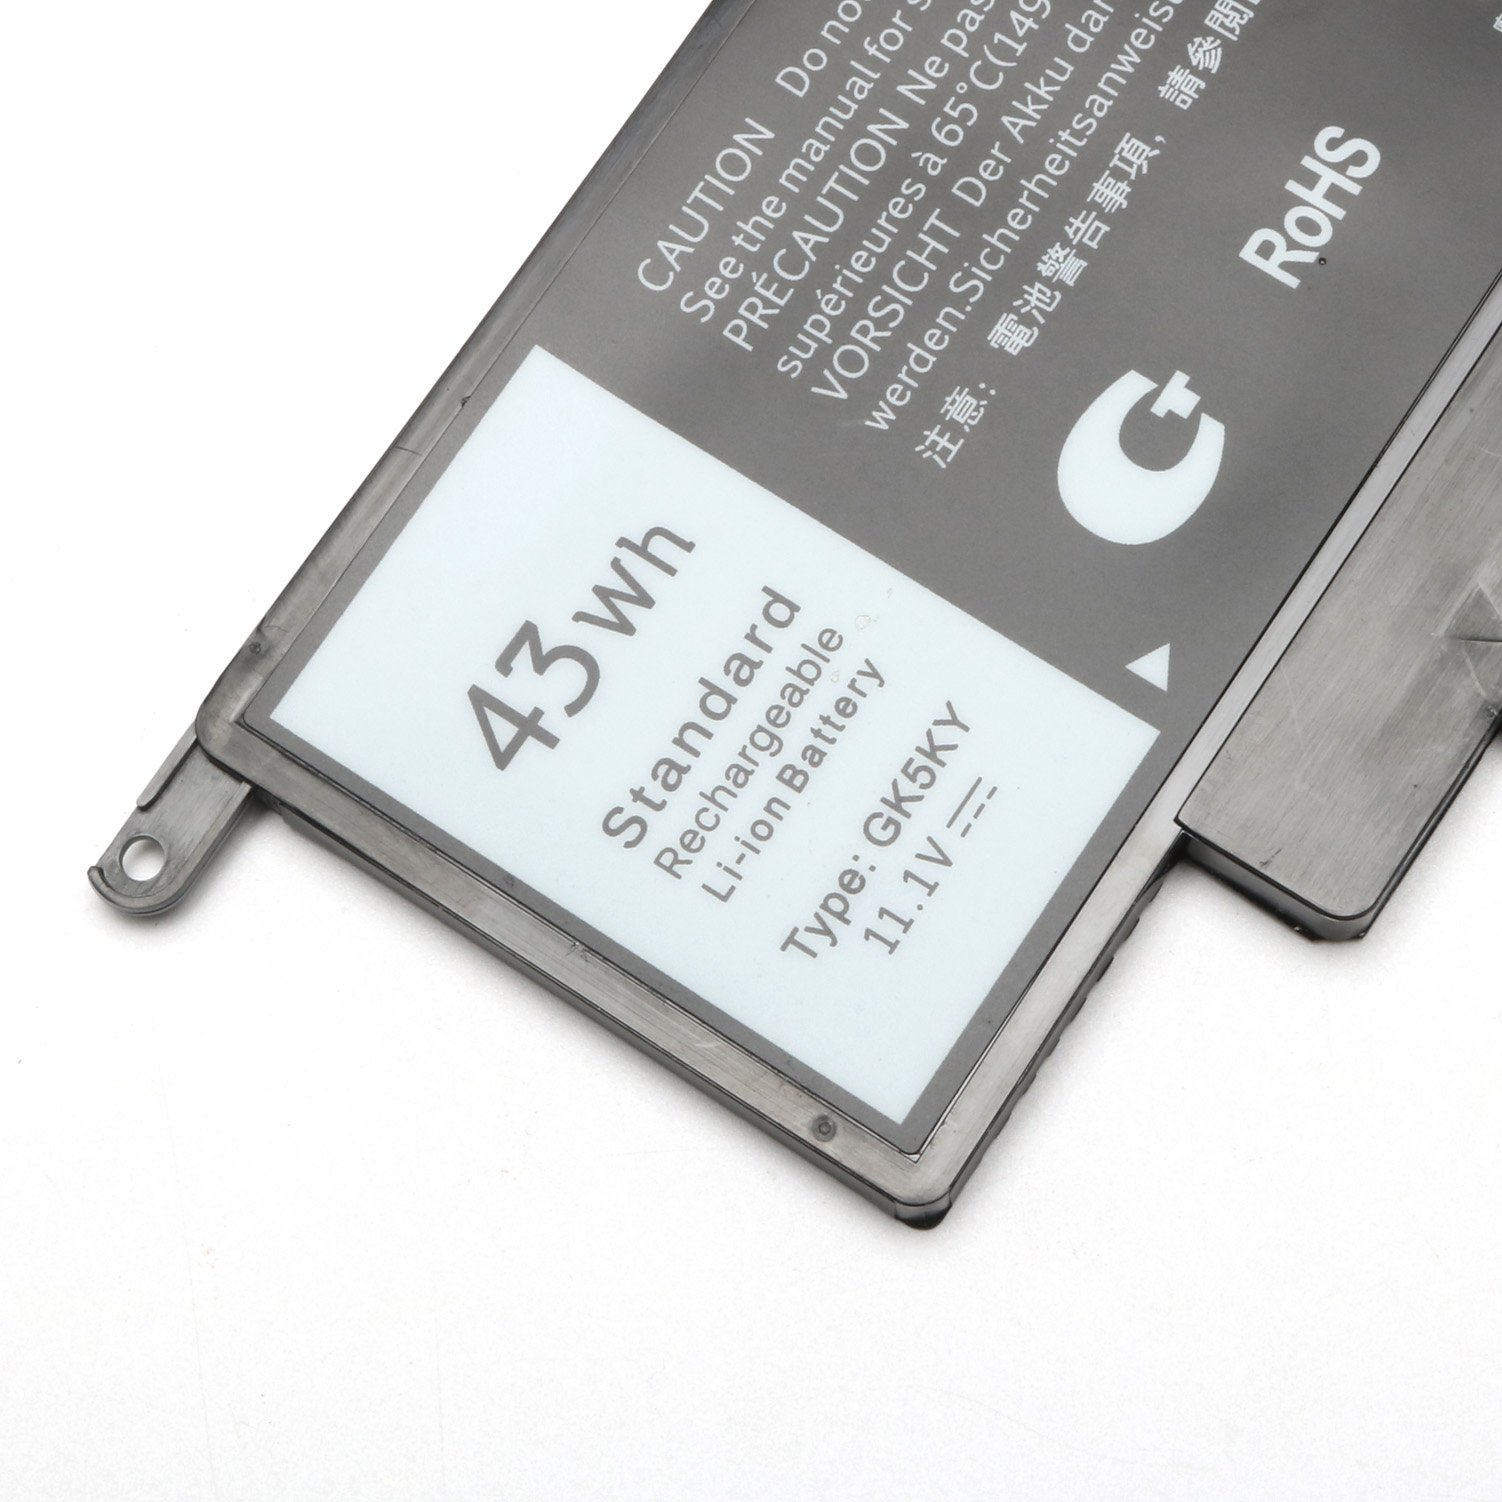 GK5KY New Laptop Battery for Dell Inspiron 11 3000 3147 3148 3152 13 7000 7353 7352 7347 7348 7359 7558 7568, Compatible P/N 04K8YH 92NCT 092NCT 4K8YH P20T Notebook PC by BULL-TECH (Image #3)